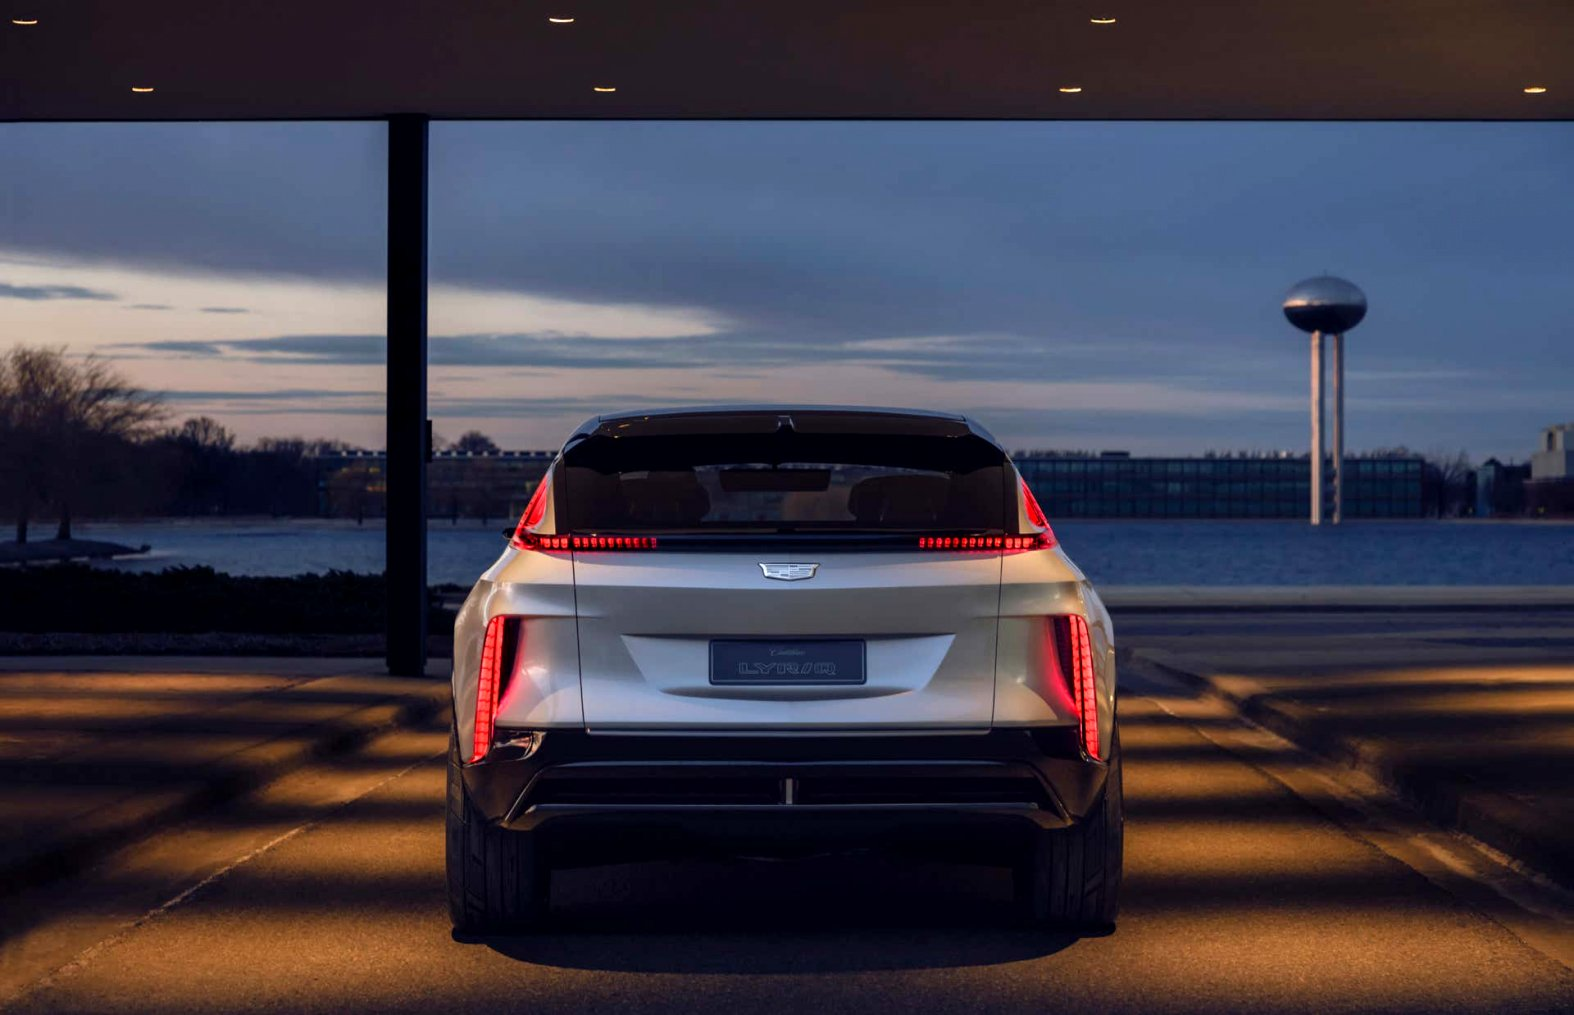 cadillac commercial song july 2020 Wallpaper